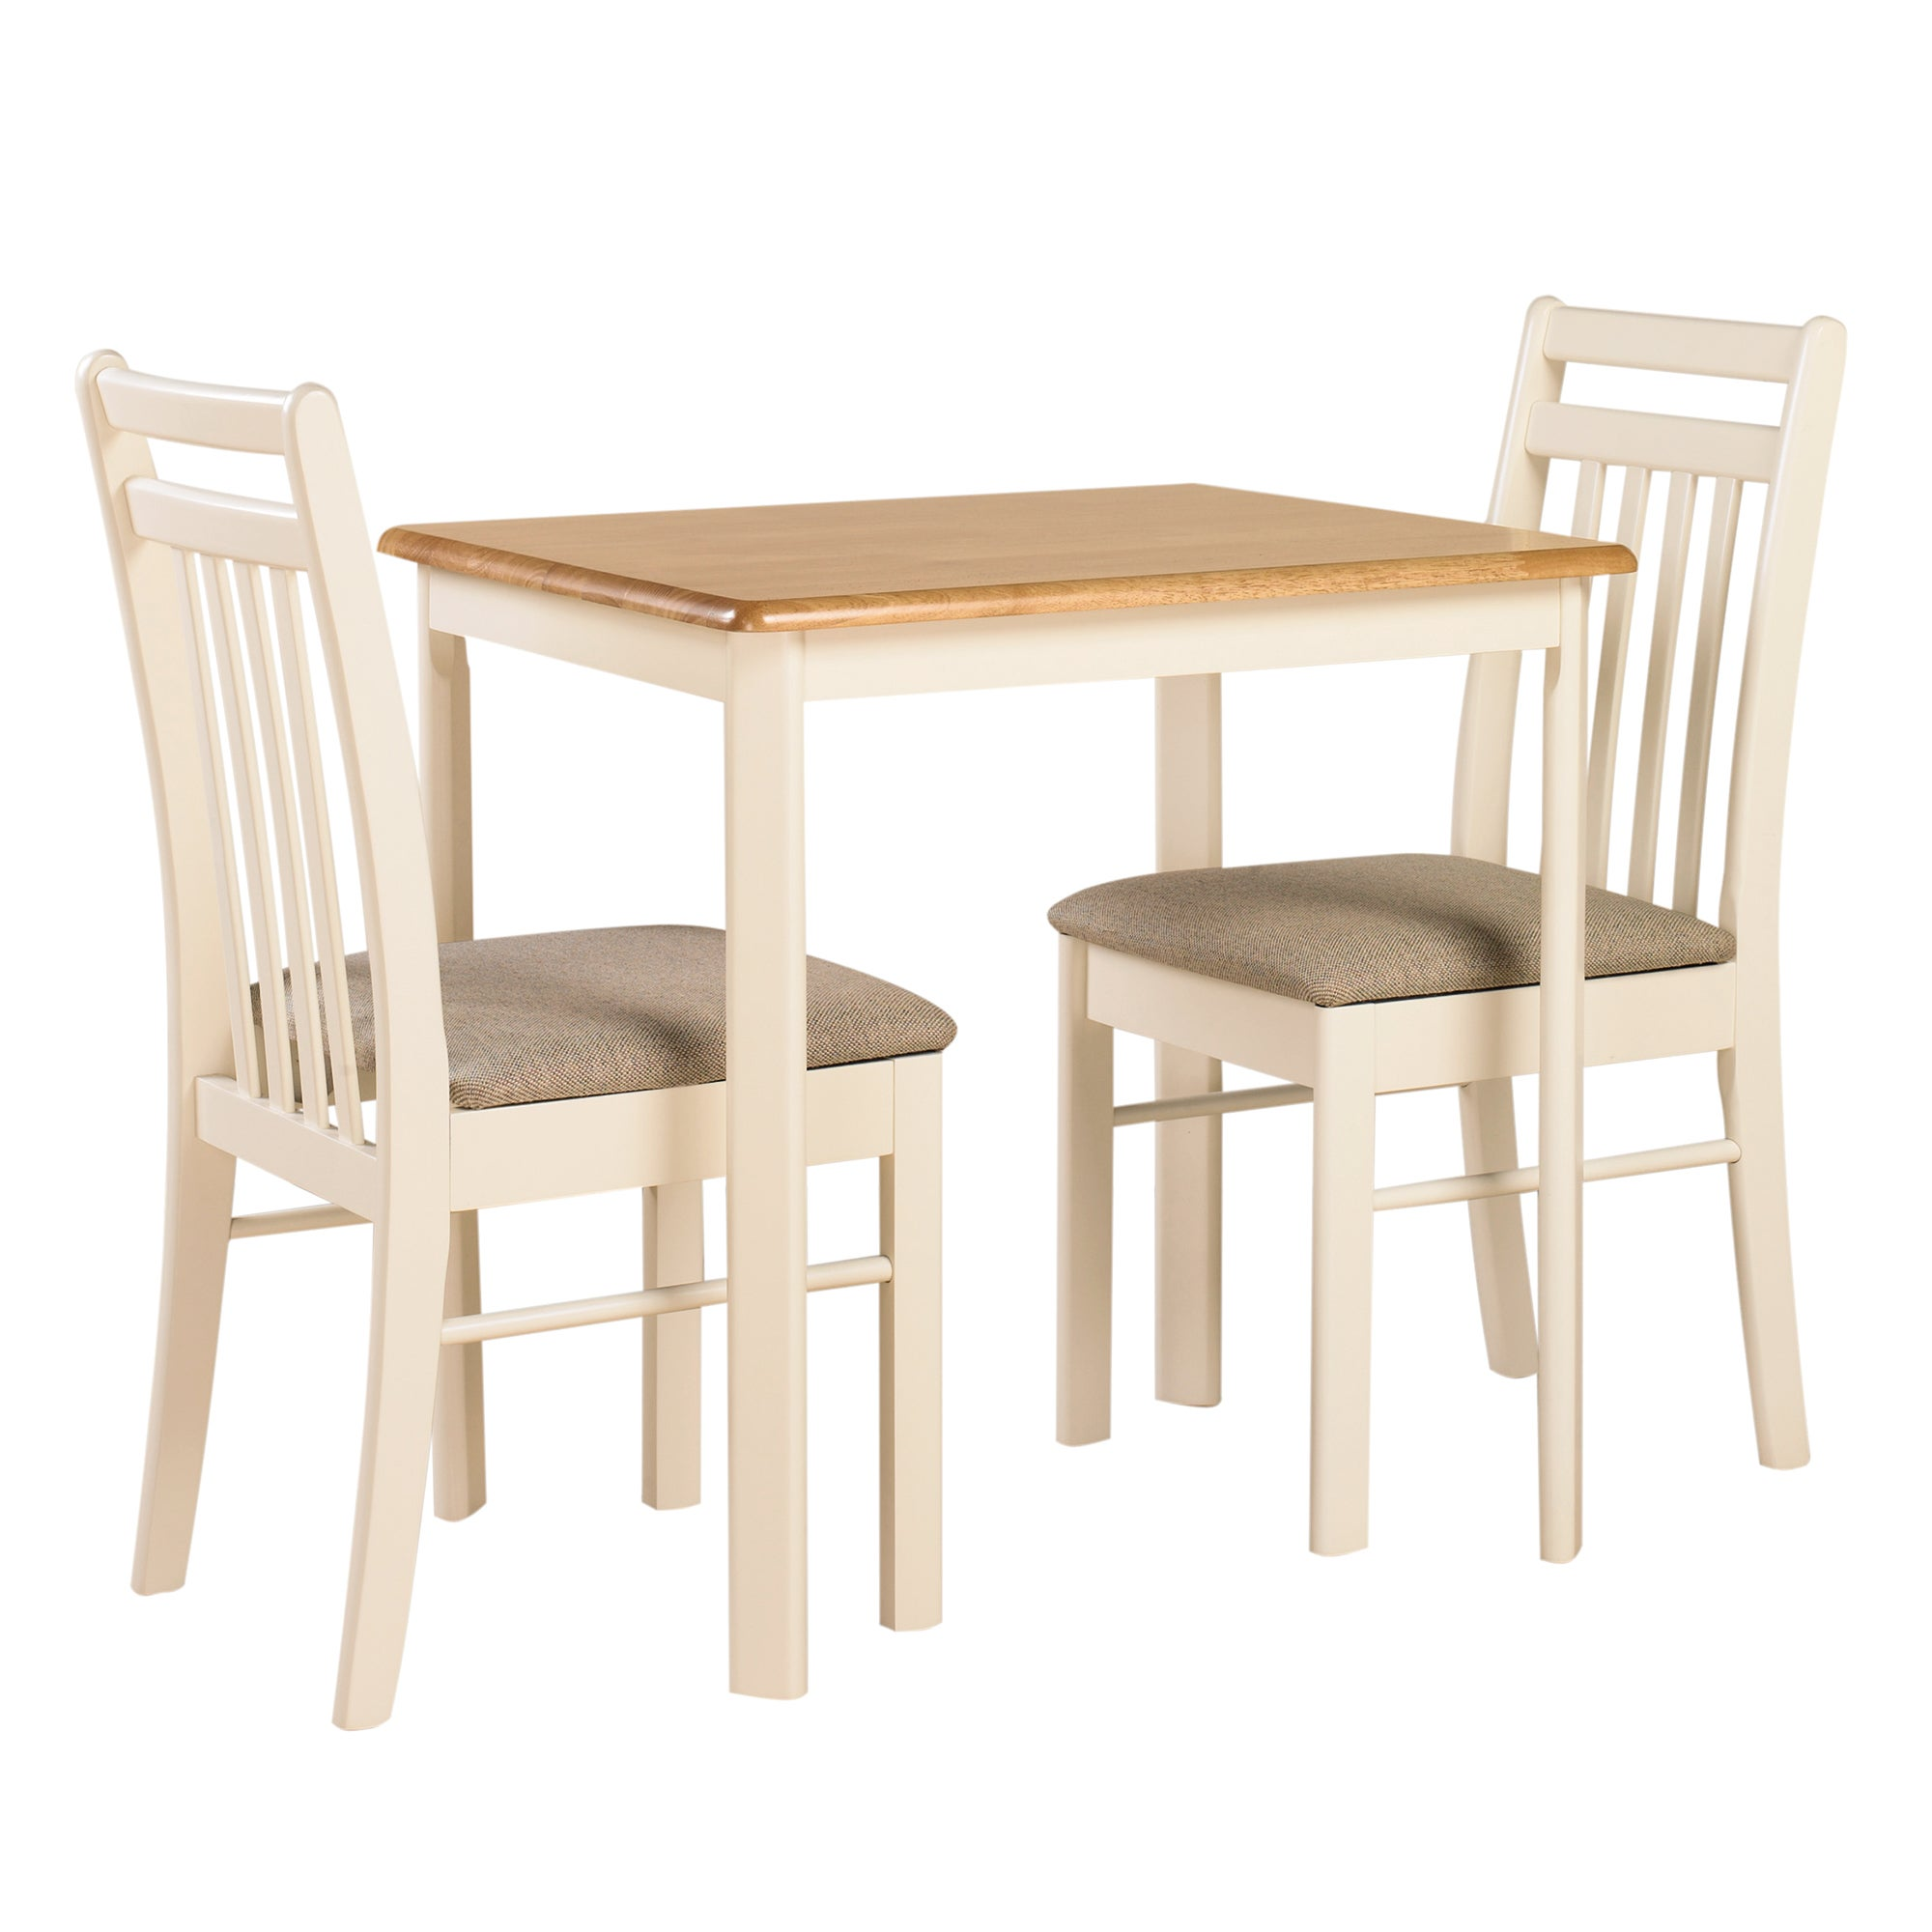 Cotswold Ivory Dining Table and Chairs